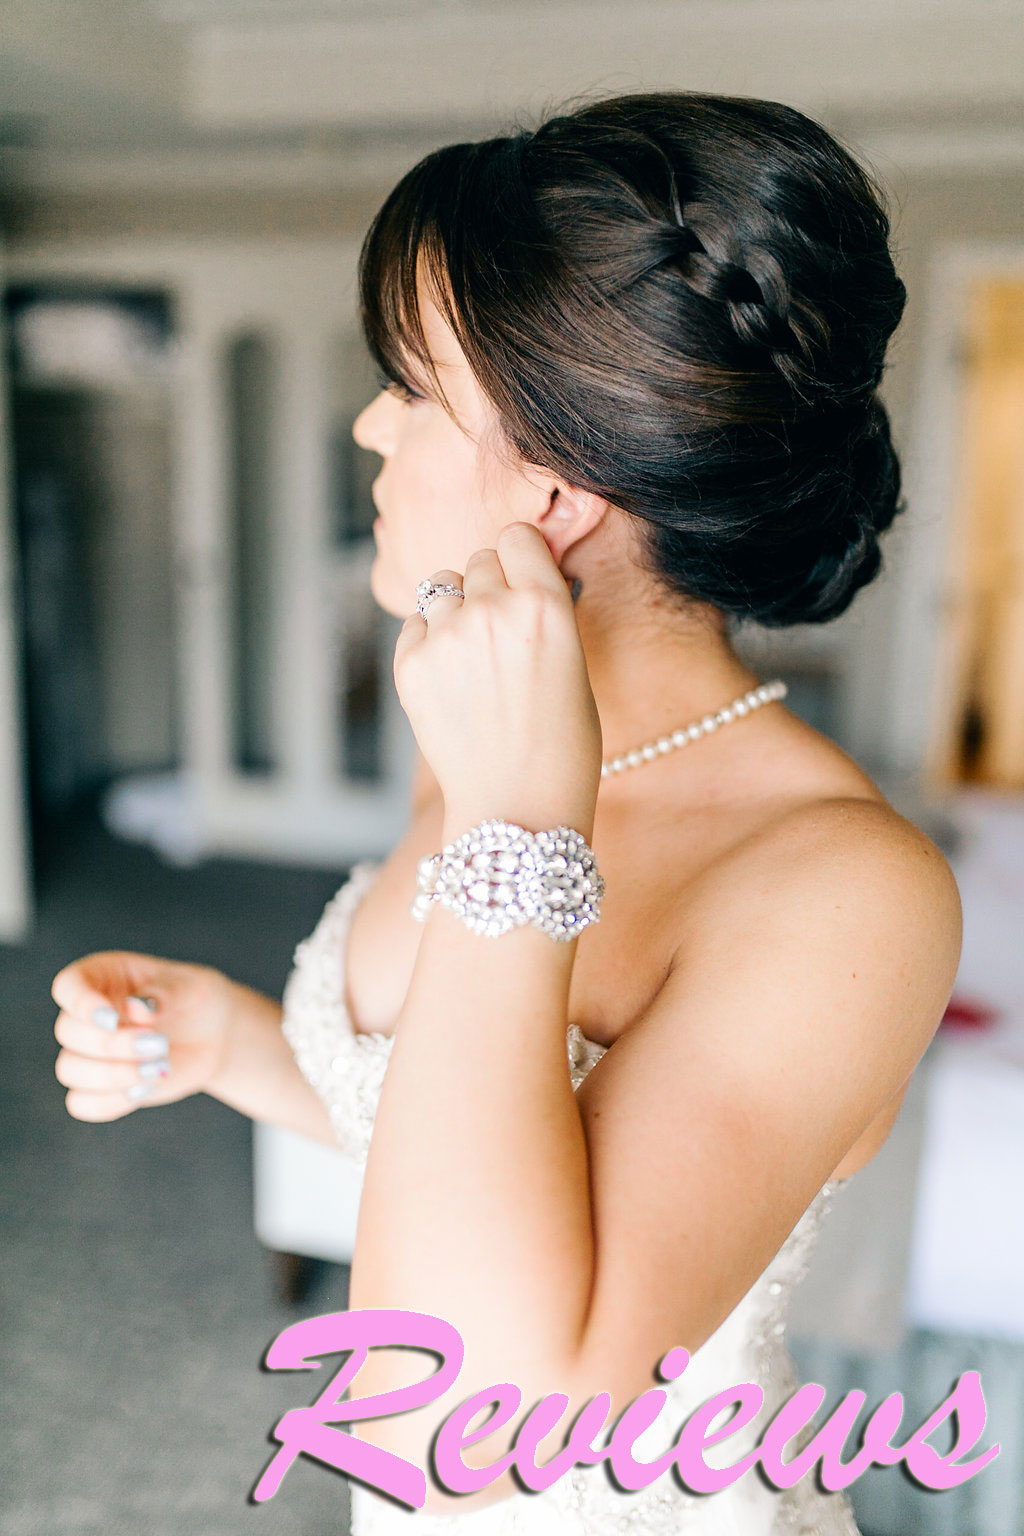 Check out our stellar reviews on weddingwire!